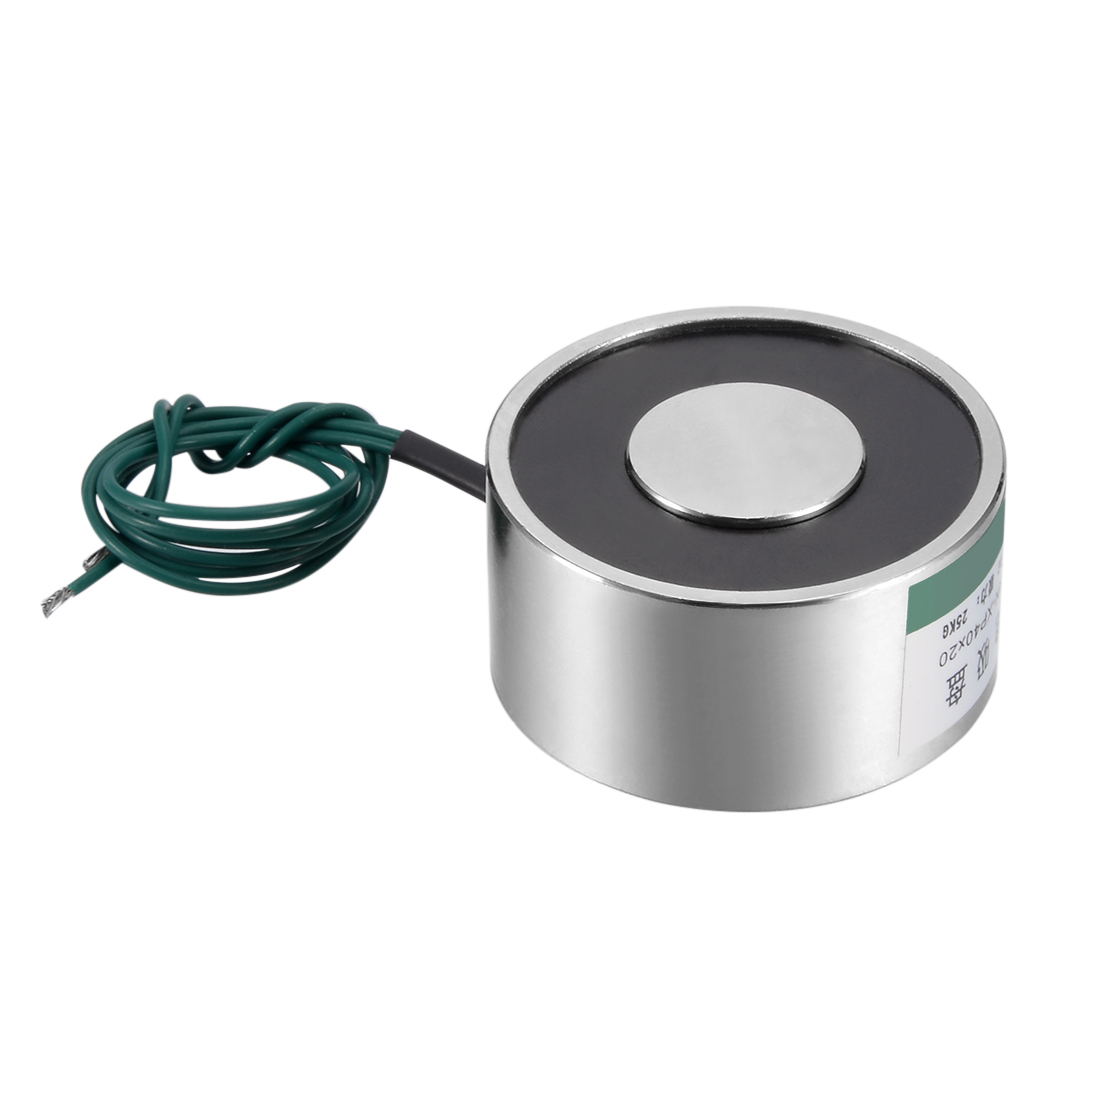 Uxcell 40mm X 20mm DC12V 250N Sucking Disc Solenoid Lift Holding Electromagnet